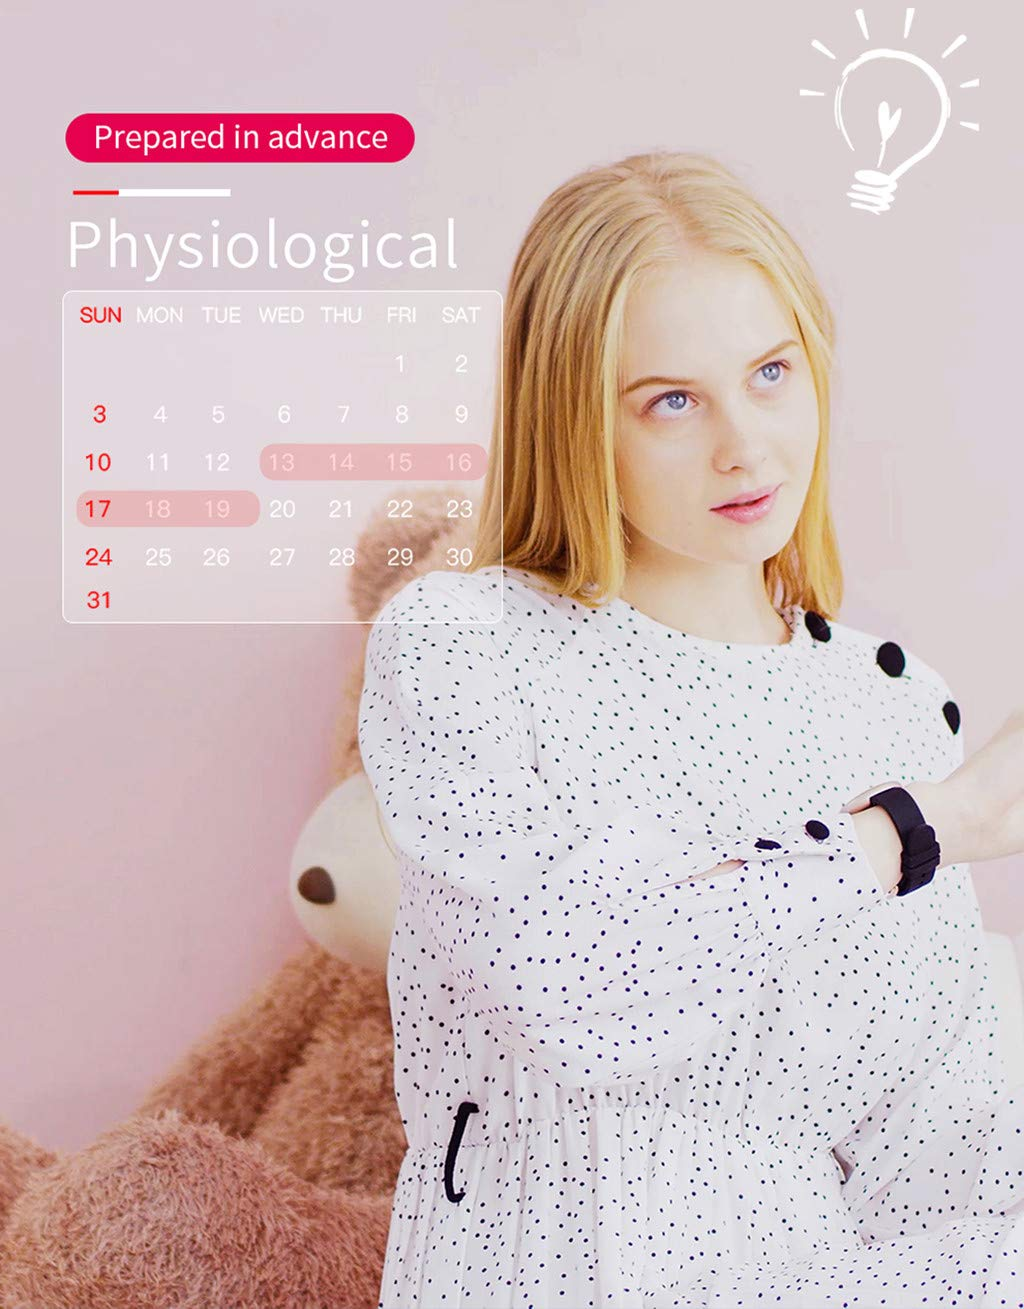 TADAMI Female Heart Rate Color Screen Physiological Period Reminds Fashion Smart Bracel (Black) by TADAMI Blouse (Image #4)